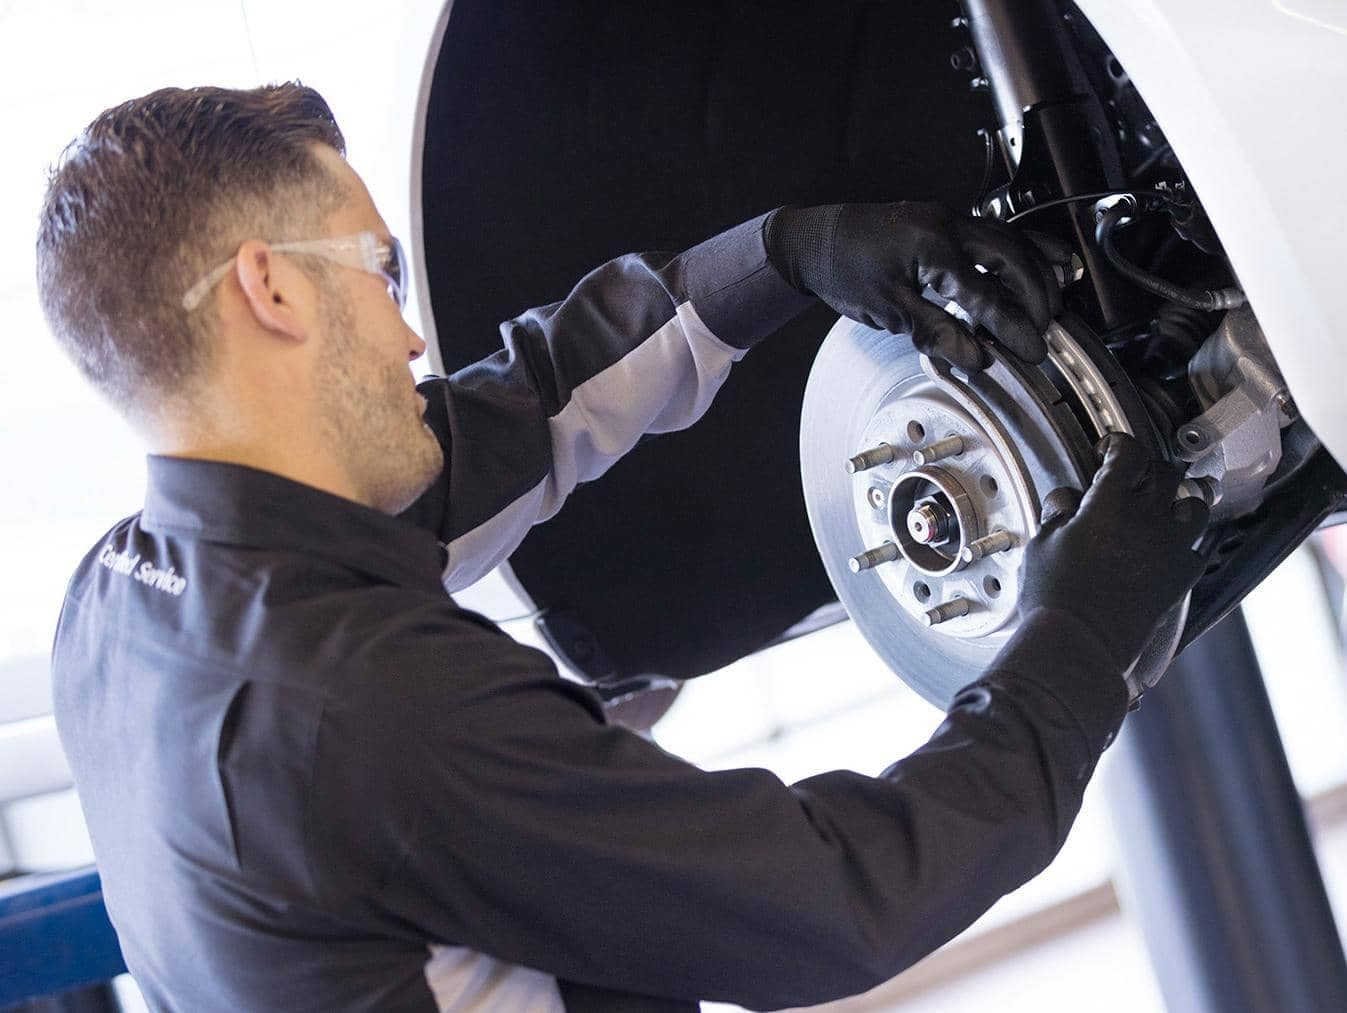 Chevrolet Service Technician installing new brakes